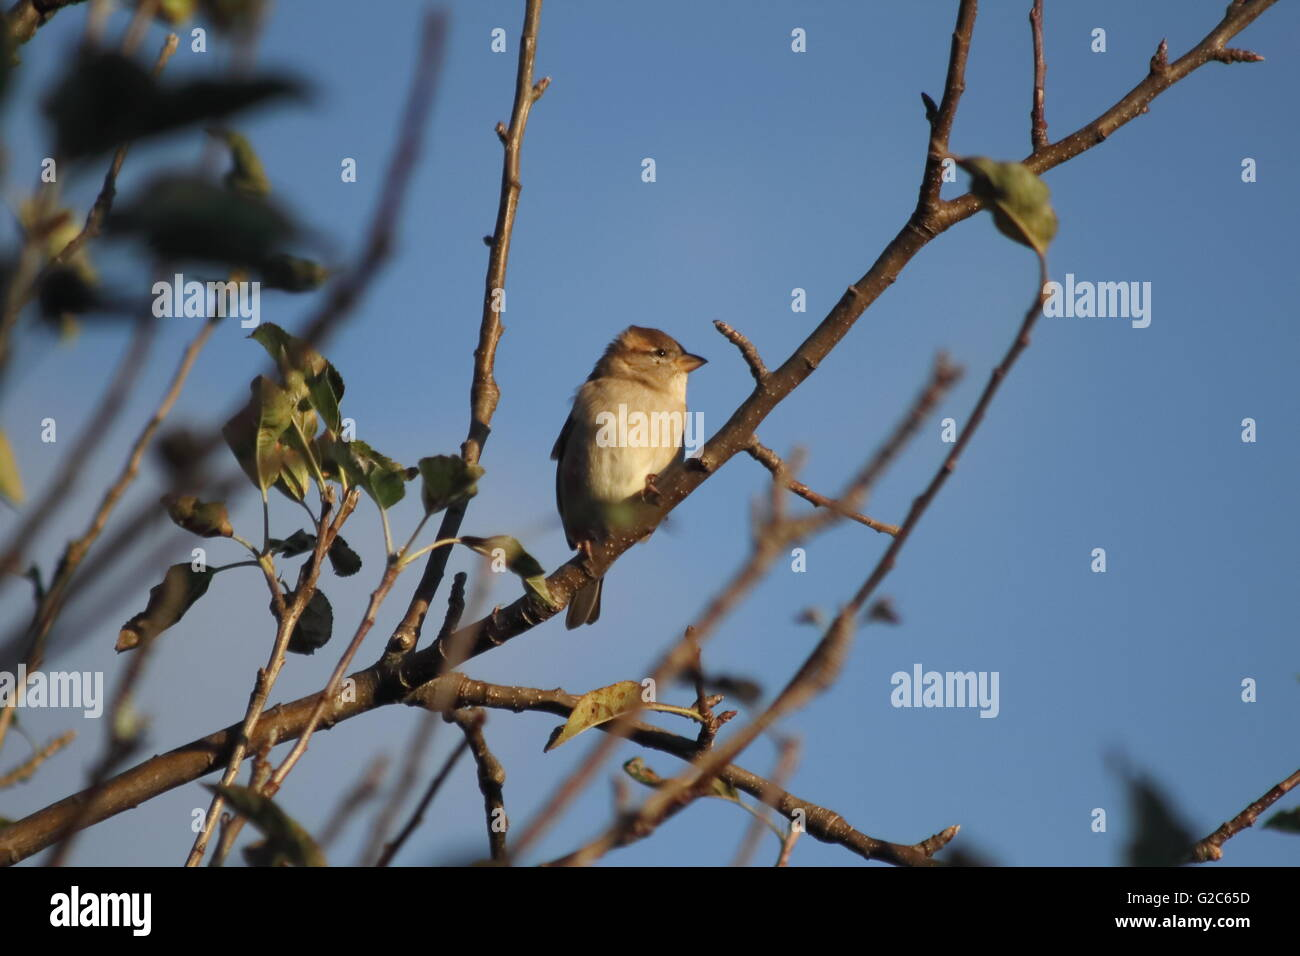 The ubiquitous house sparrow (Passer domesticus) on a tree branch early in the morning - Stock Image